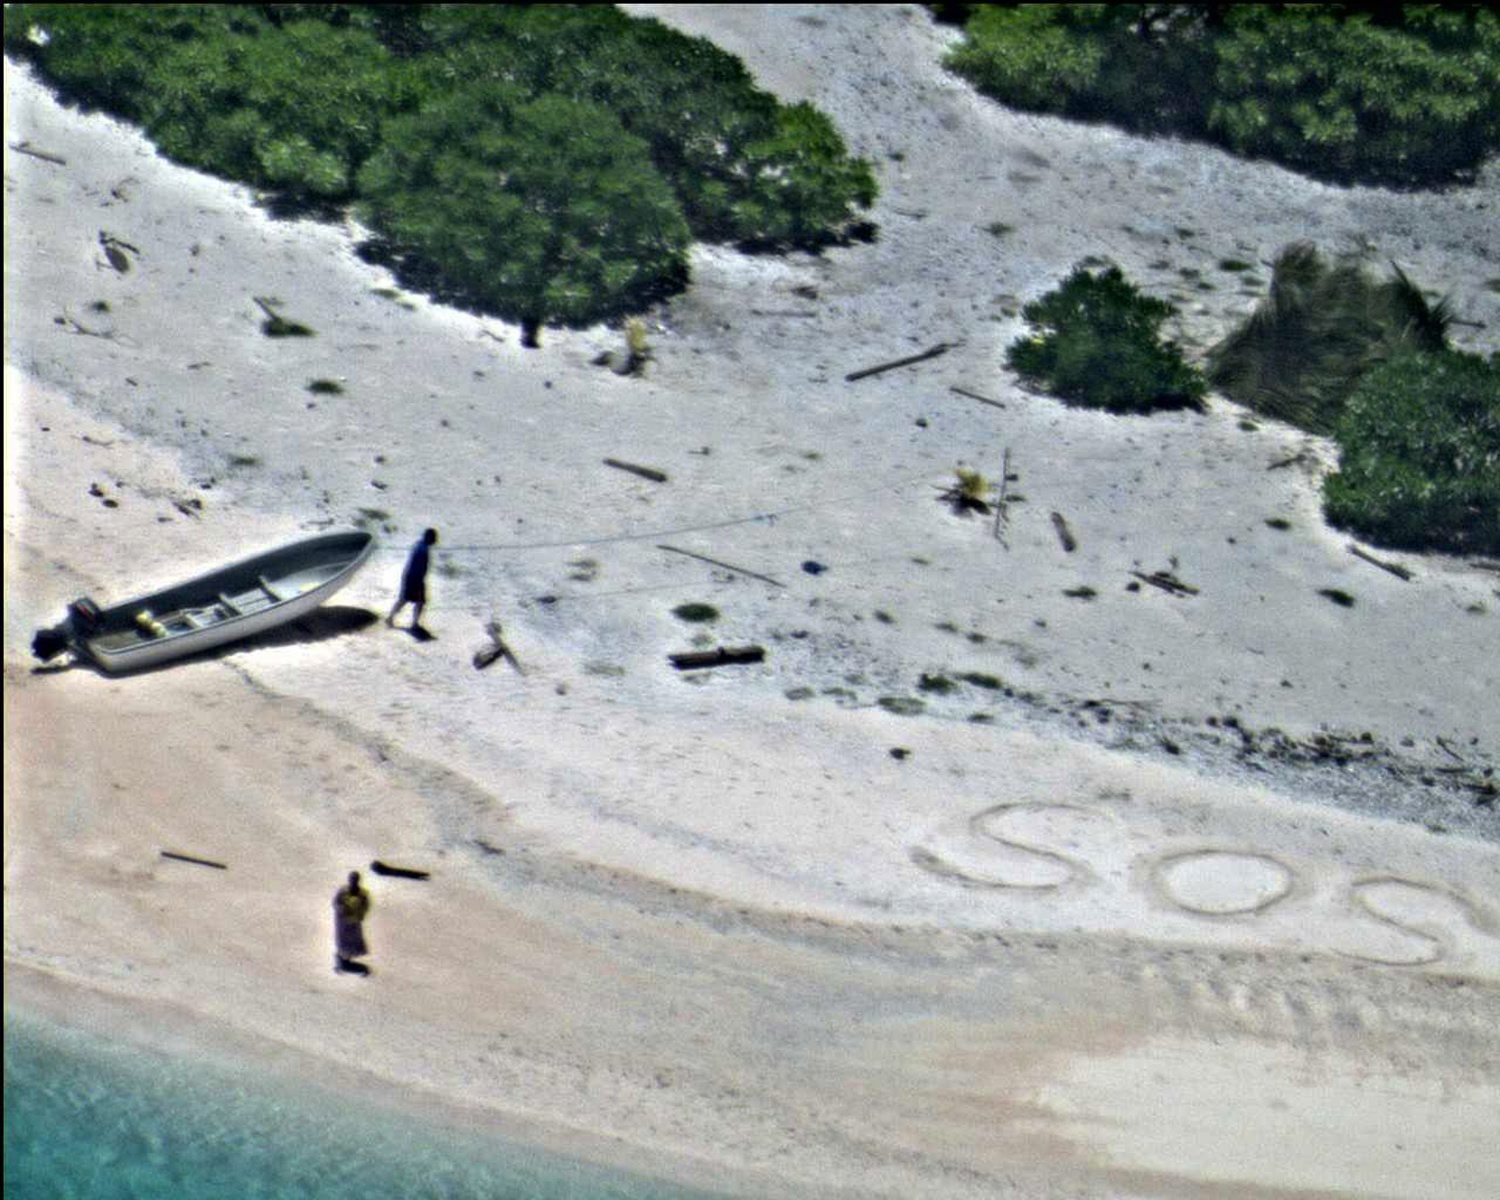 A pair of stranded mariners signaling for help by writing 'SOS' in the sand as a US Navy P-8A Poseidon aircraft crew from Patrol Squadron (VP) 8 flies over in support of a Coast Guard search and rescue mission at East Fayu Island, Micronesia, on 25 August 2016.